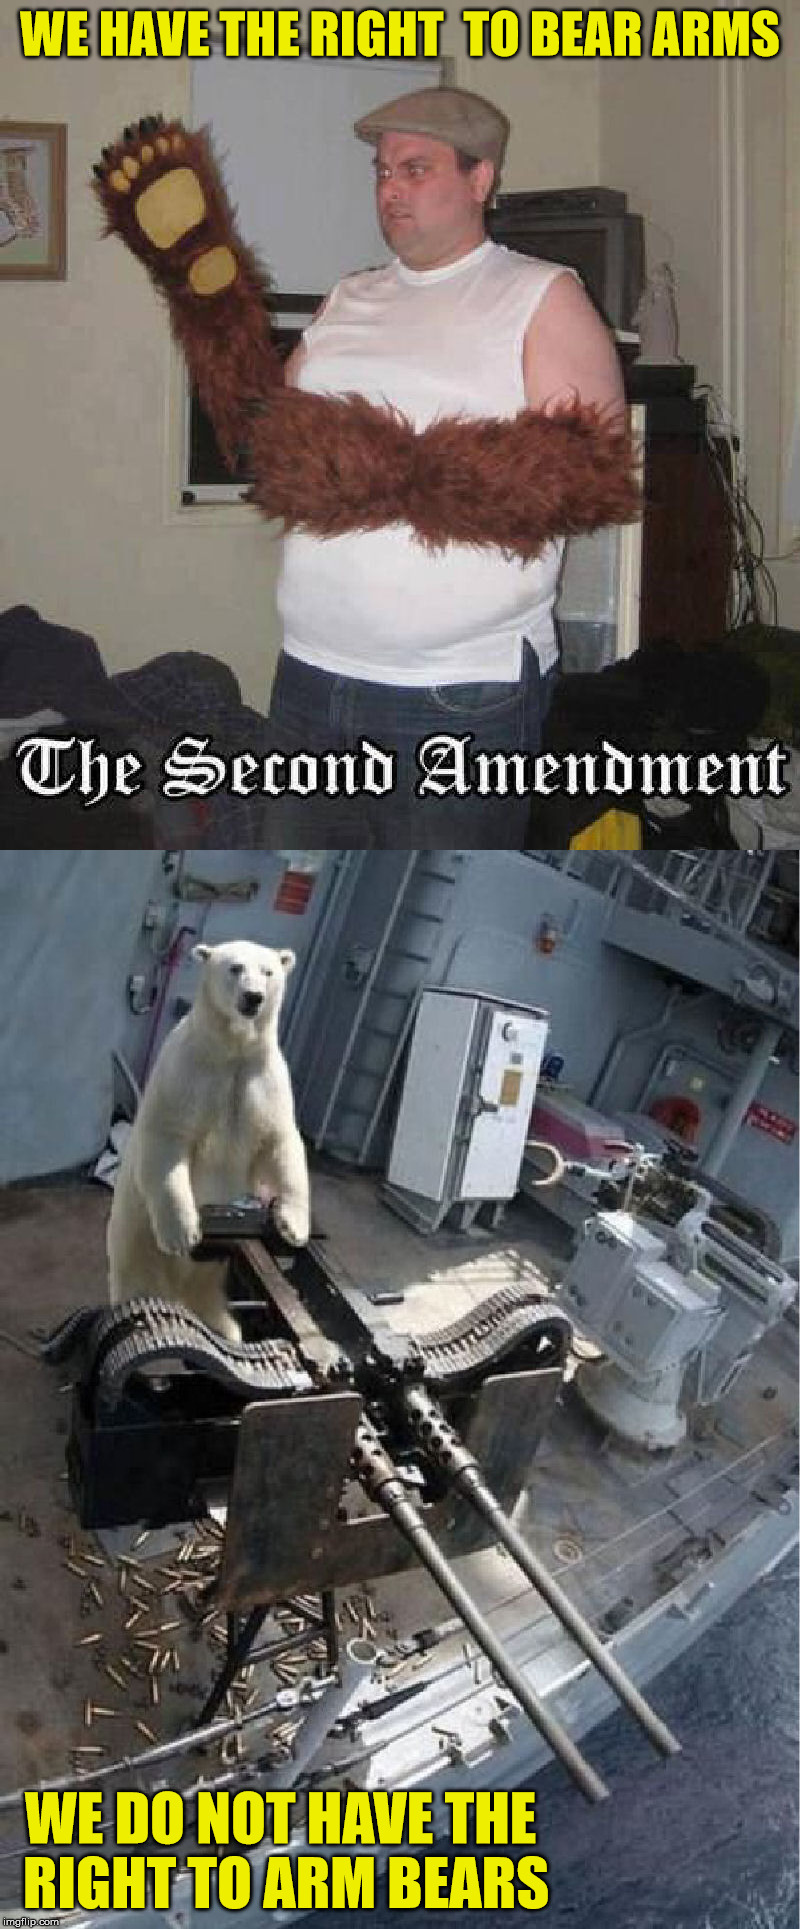 This inalienable right also requires us to not arm aliens | WE HAVE THE RIGHT  TO BEAR ARMS WE DO NOT HAVE THE RIGHT TO ARM BEARS | image tagged in second amendment,us constitution,visual pun | made w/ Imgflip meme maker